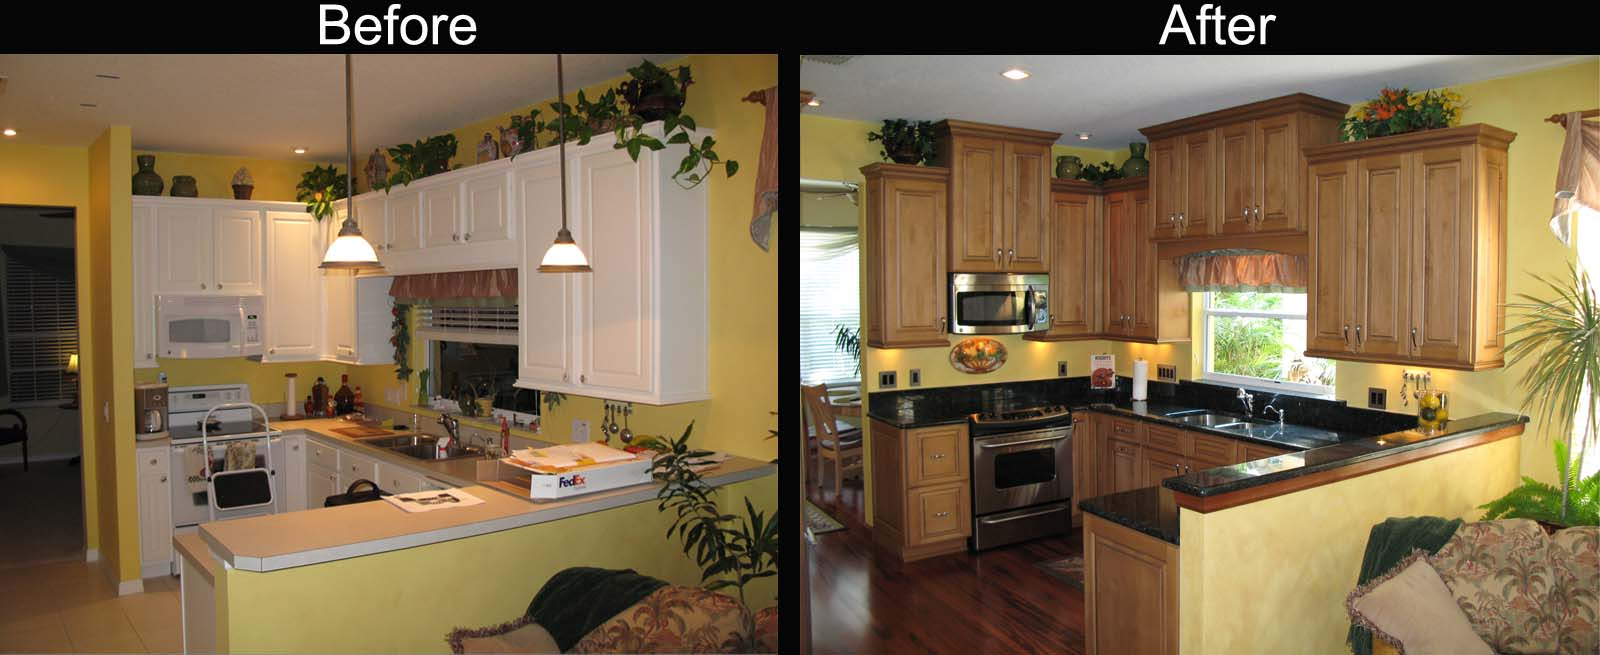 Before After Kitchen Remodel Kitchen Design Photos 2015